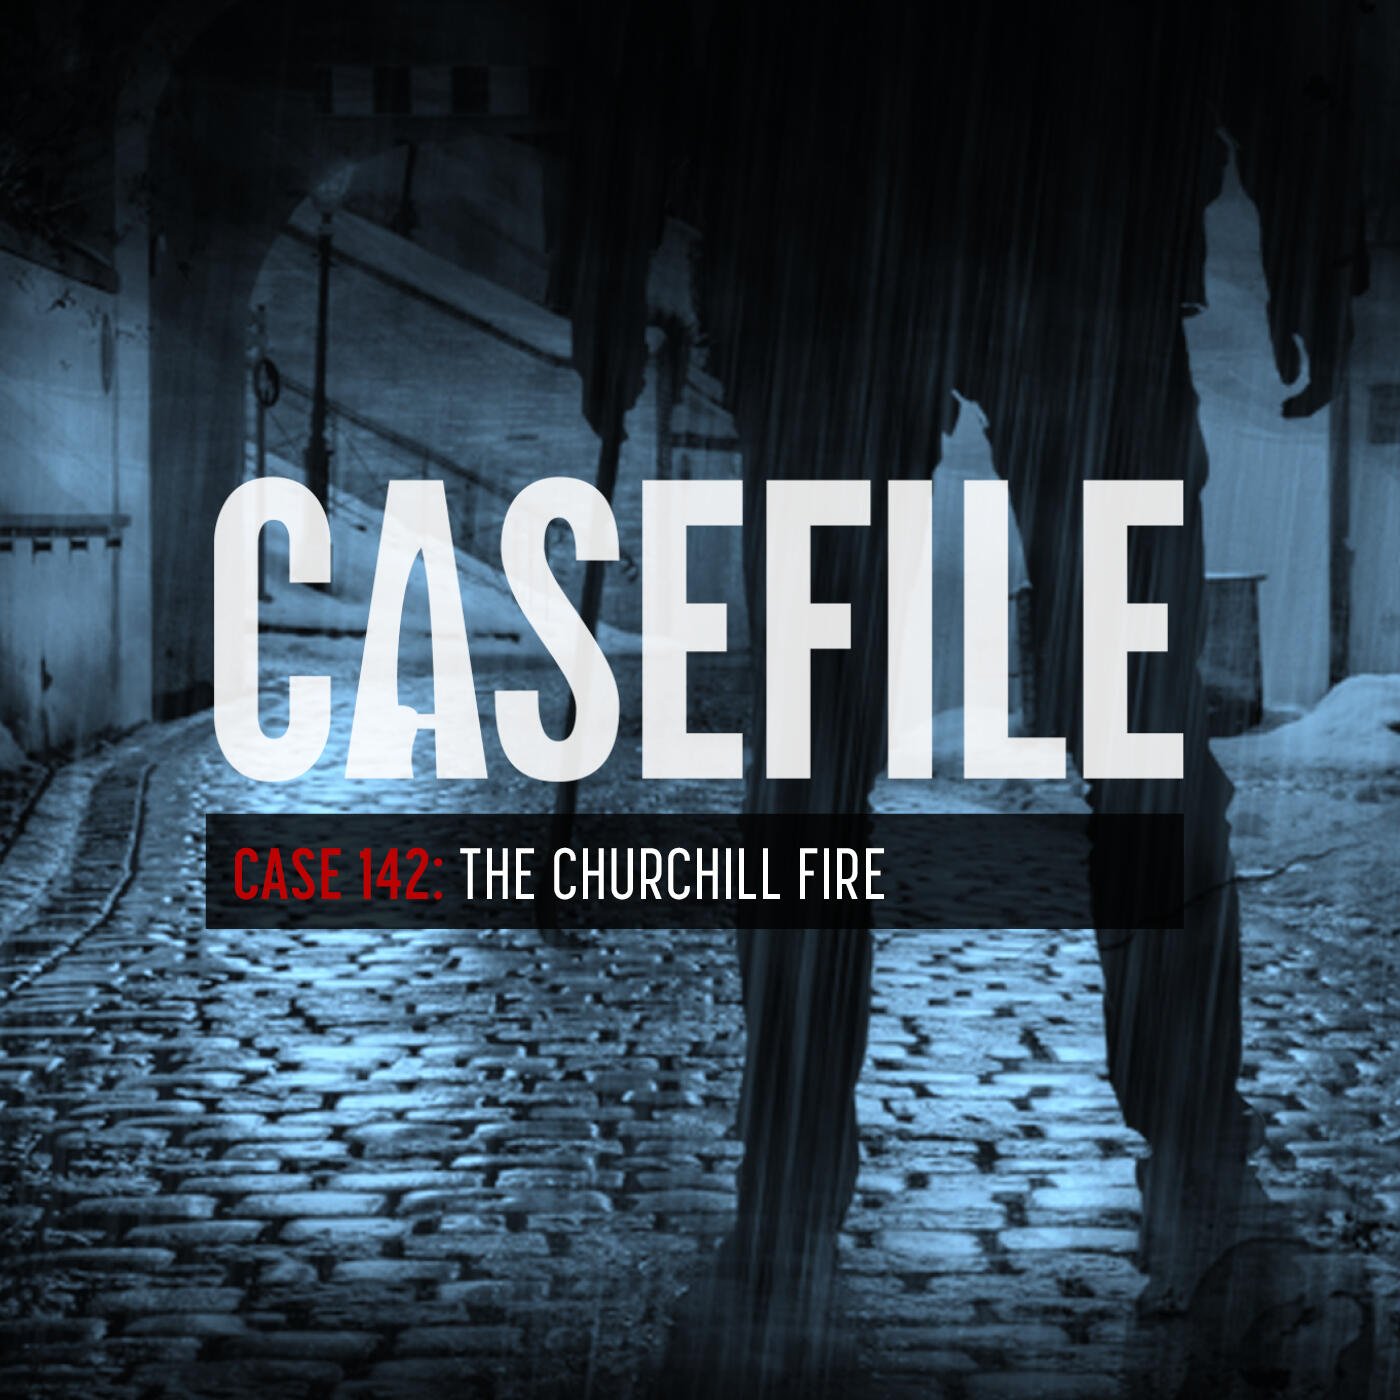 Case 142: The Churchill Fire